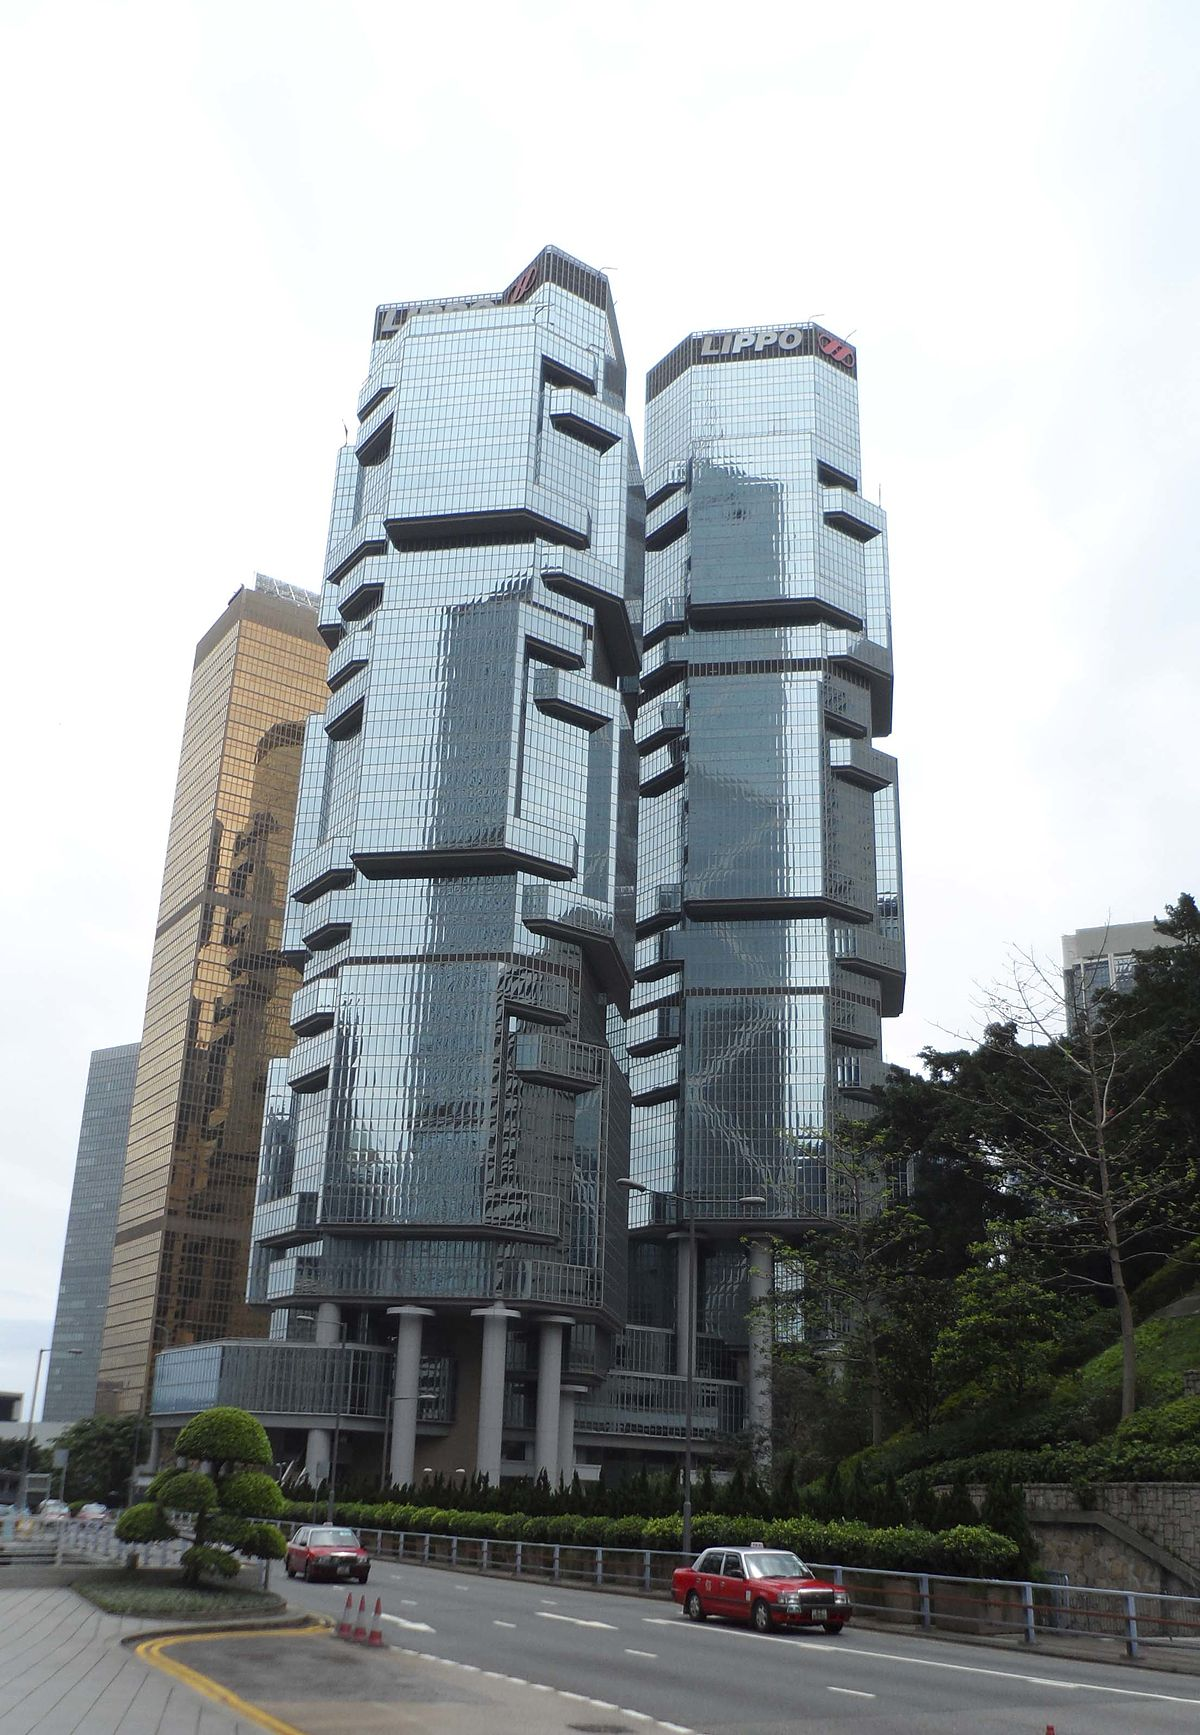 About lippo group